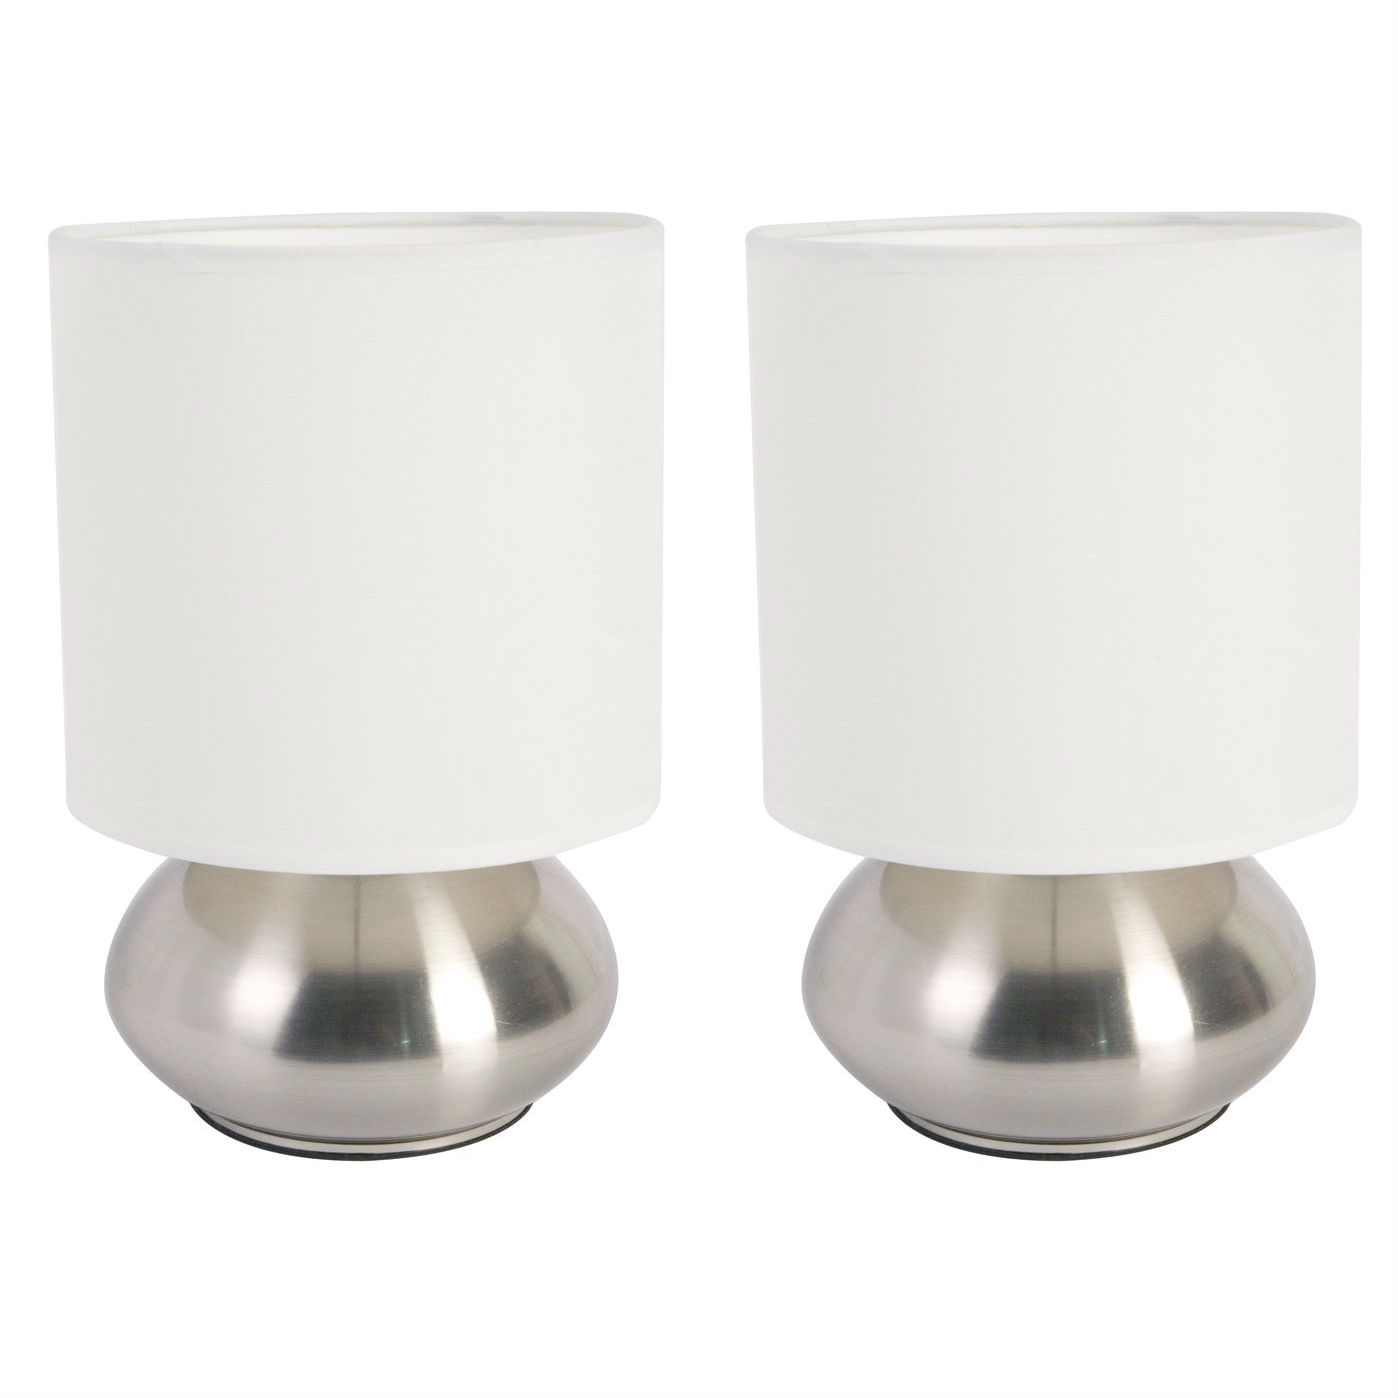 Brighten up your living area with this Set of 2 Bedroom Table Lamp Night Light with Touch On Off Sensor. Enjoy lighting made easy with the On/Off touch control feature. The trendy design is complimented by a satin shade and metal body.